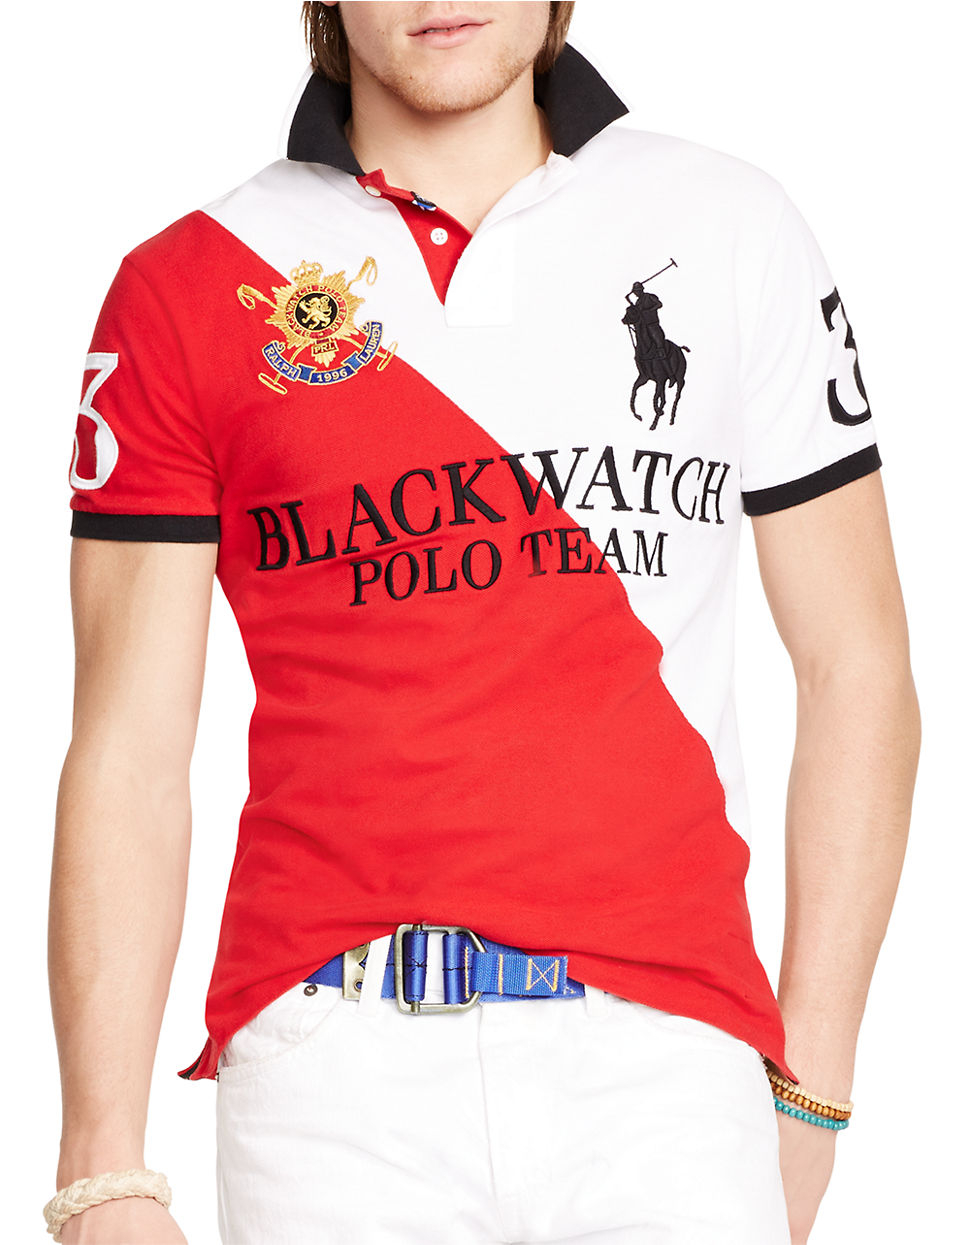 2ab2bb84 Polo Shirts Red And Black - DREAMWORKS